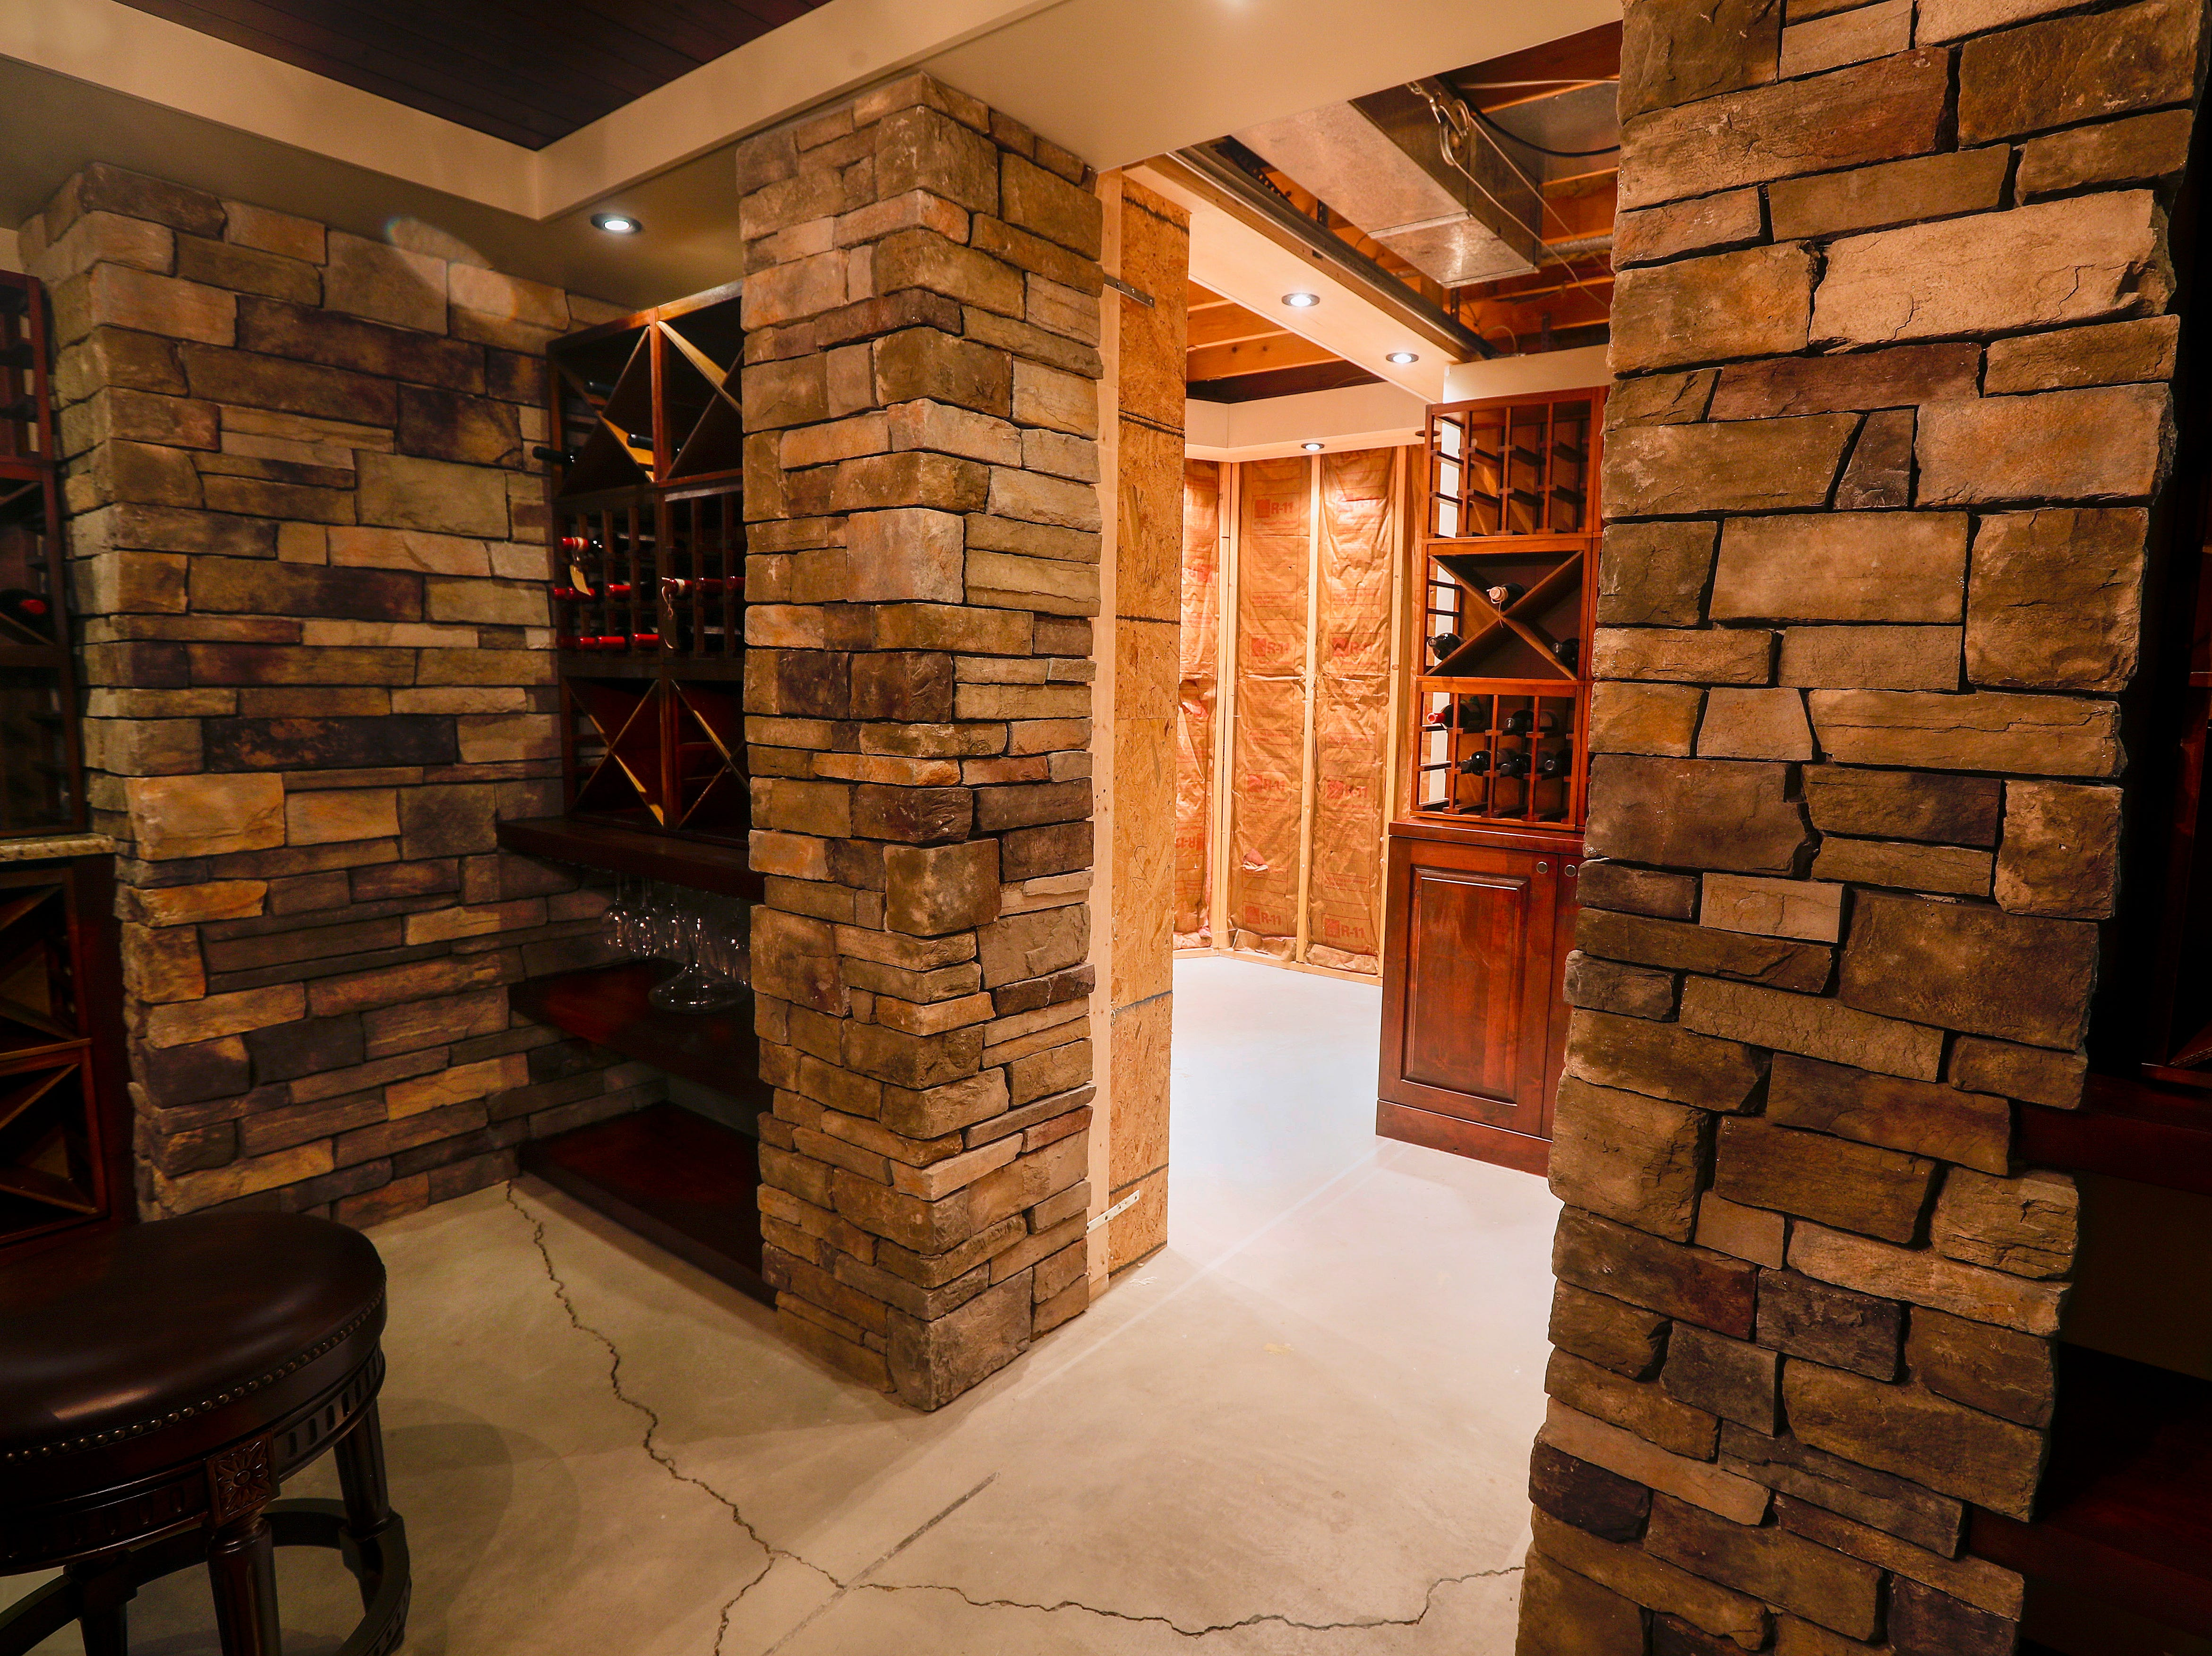 The wine cellar includes a retractable panel that exposes a hidden room.